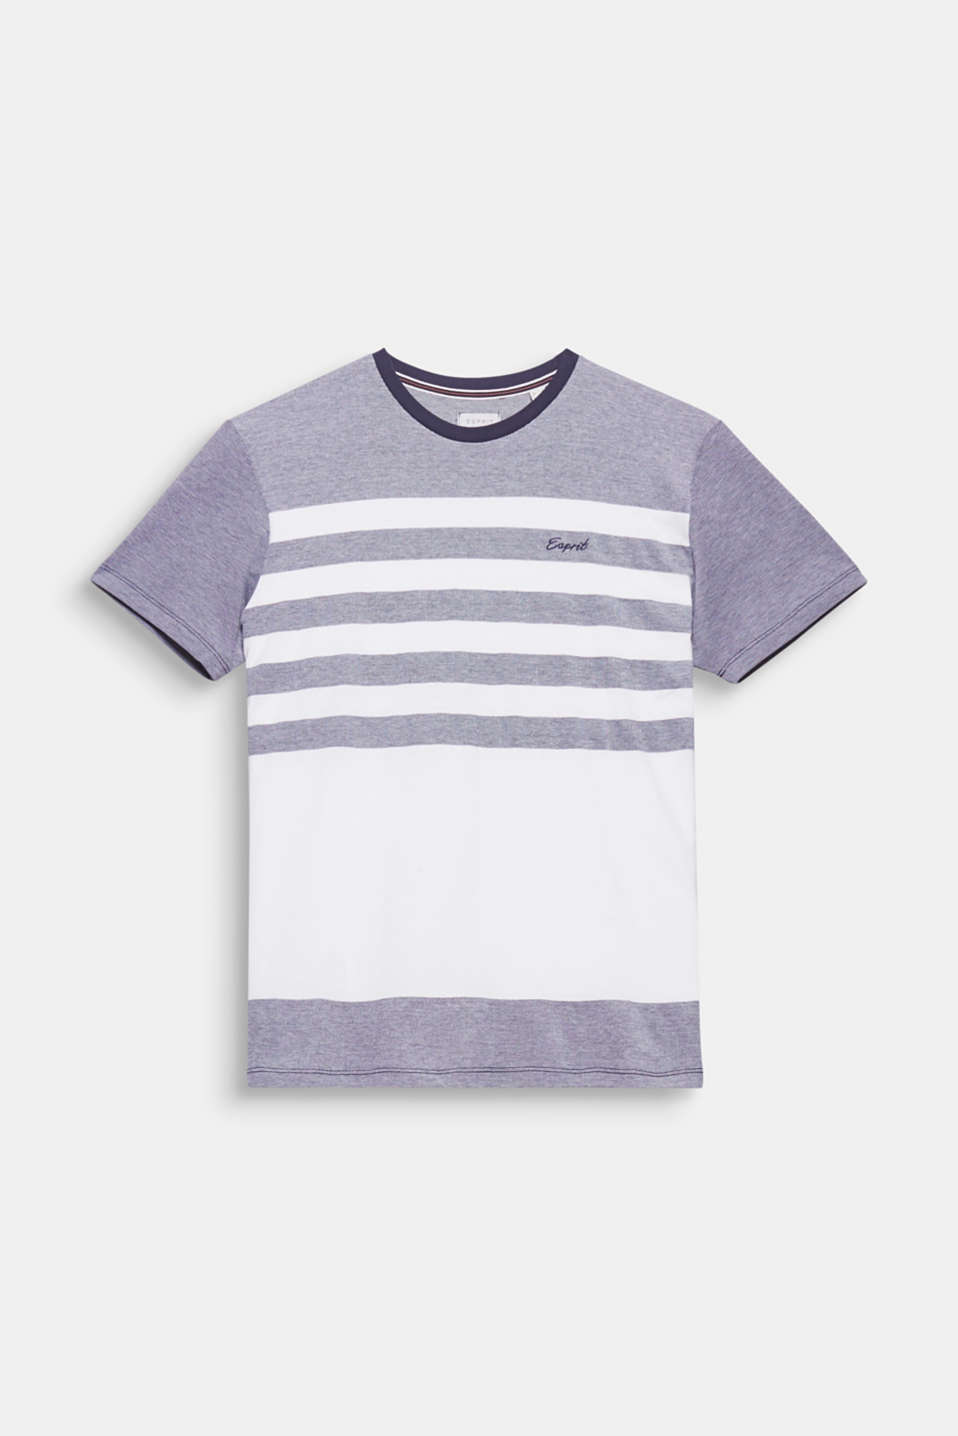 This T-shirt features stripes in smooth jersey and grainy piqué for an exciting mix of textures.